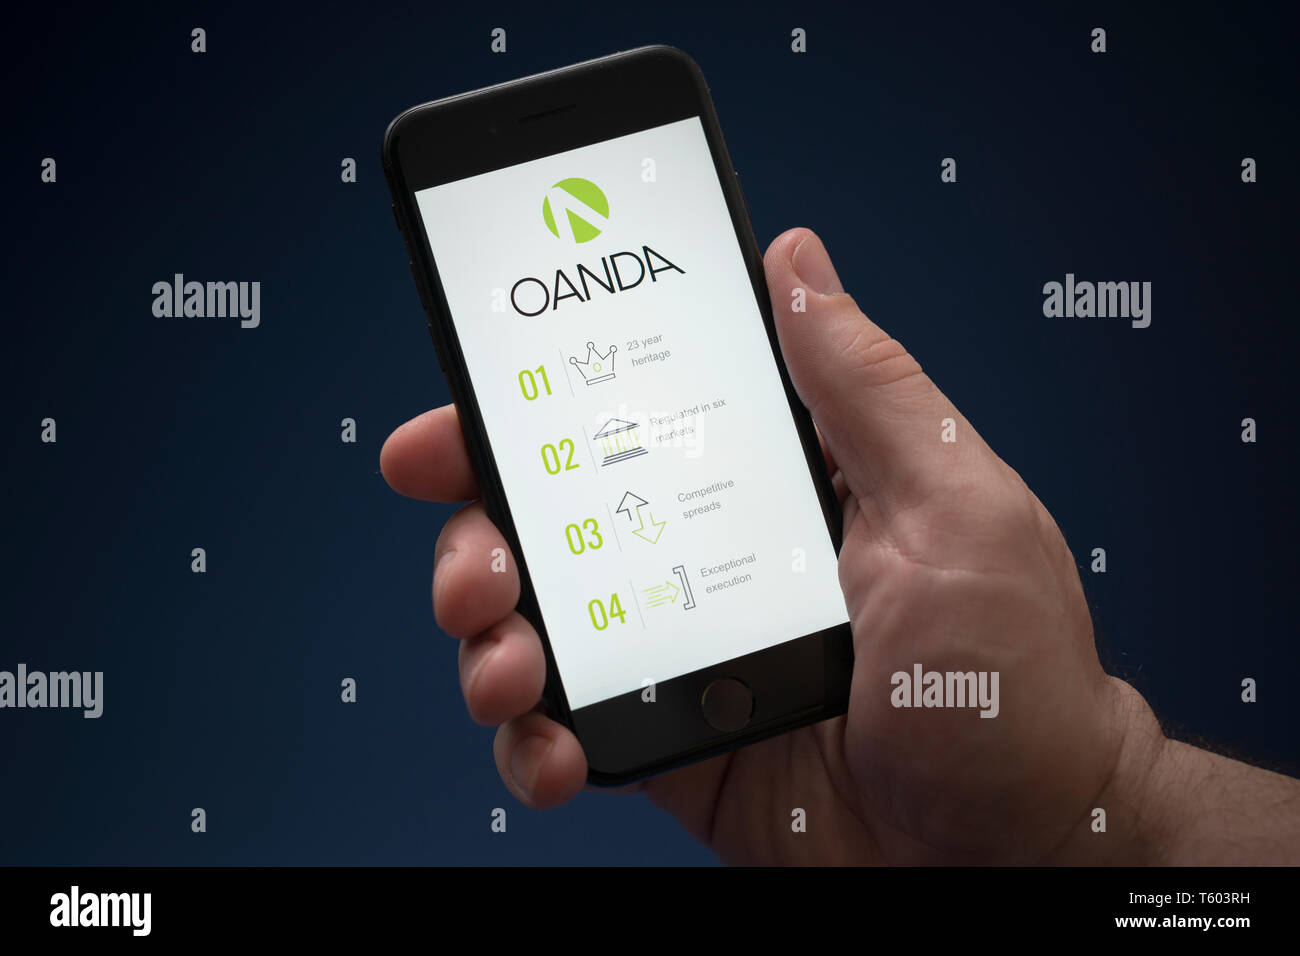 A man looks at his iPhone which displays the Oanda logo